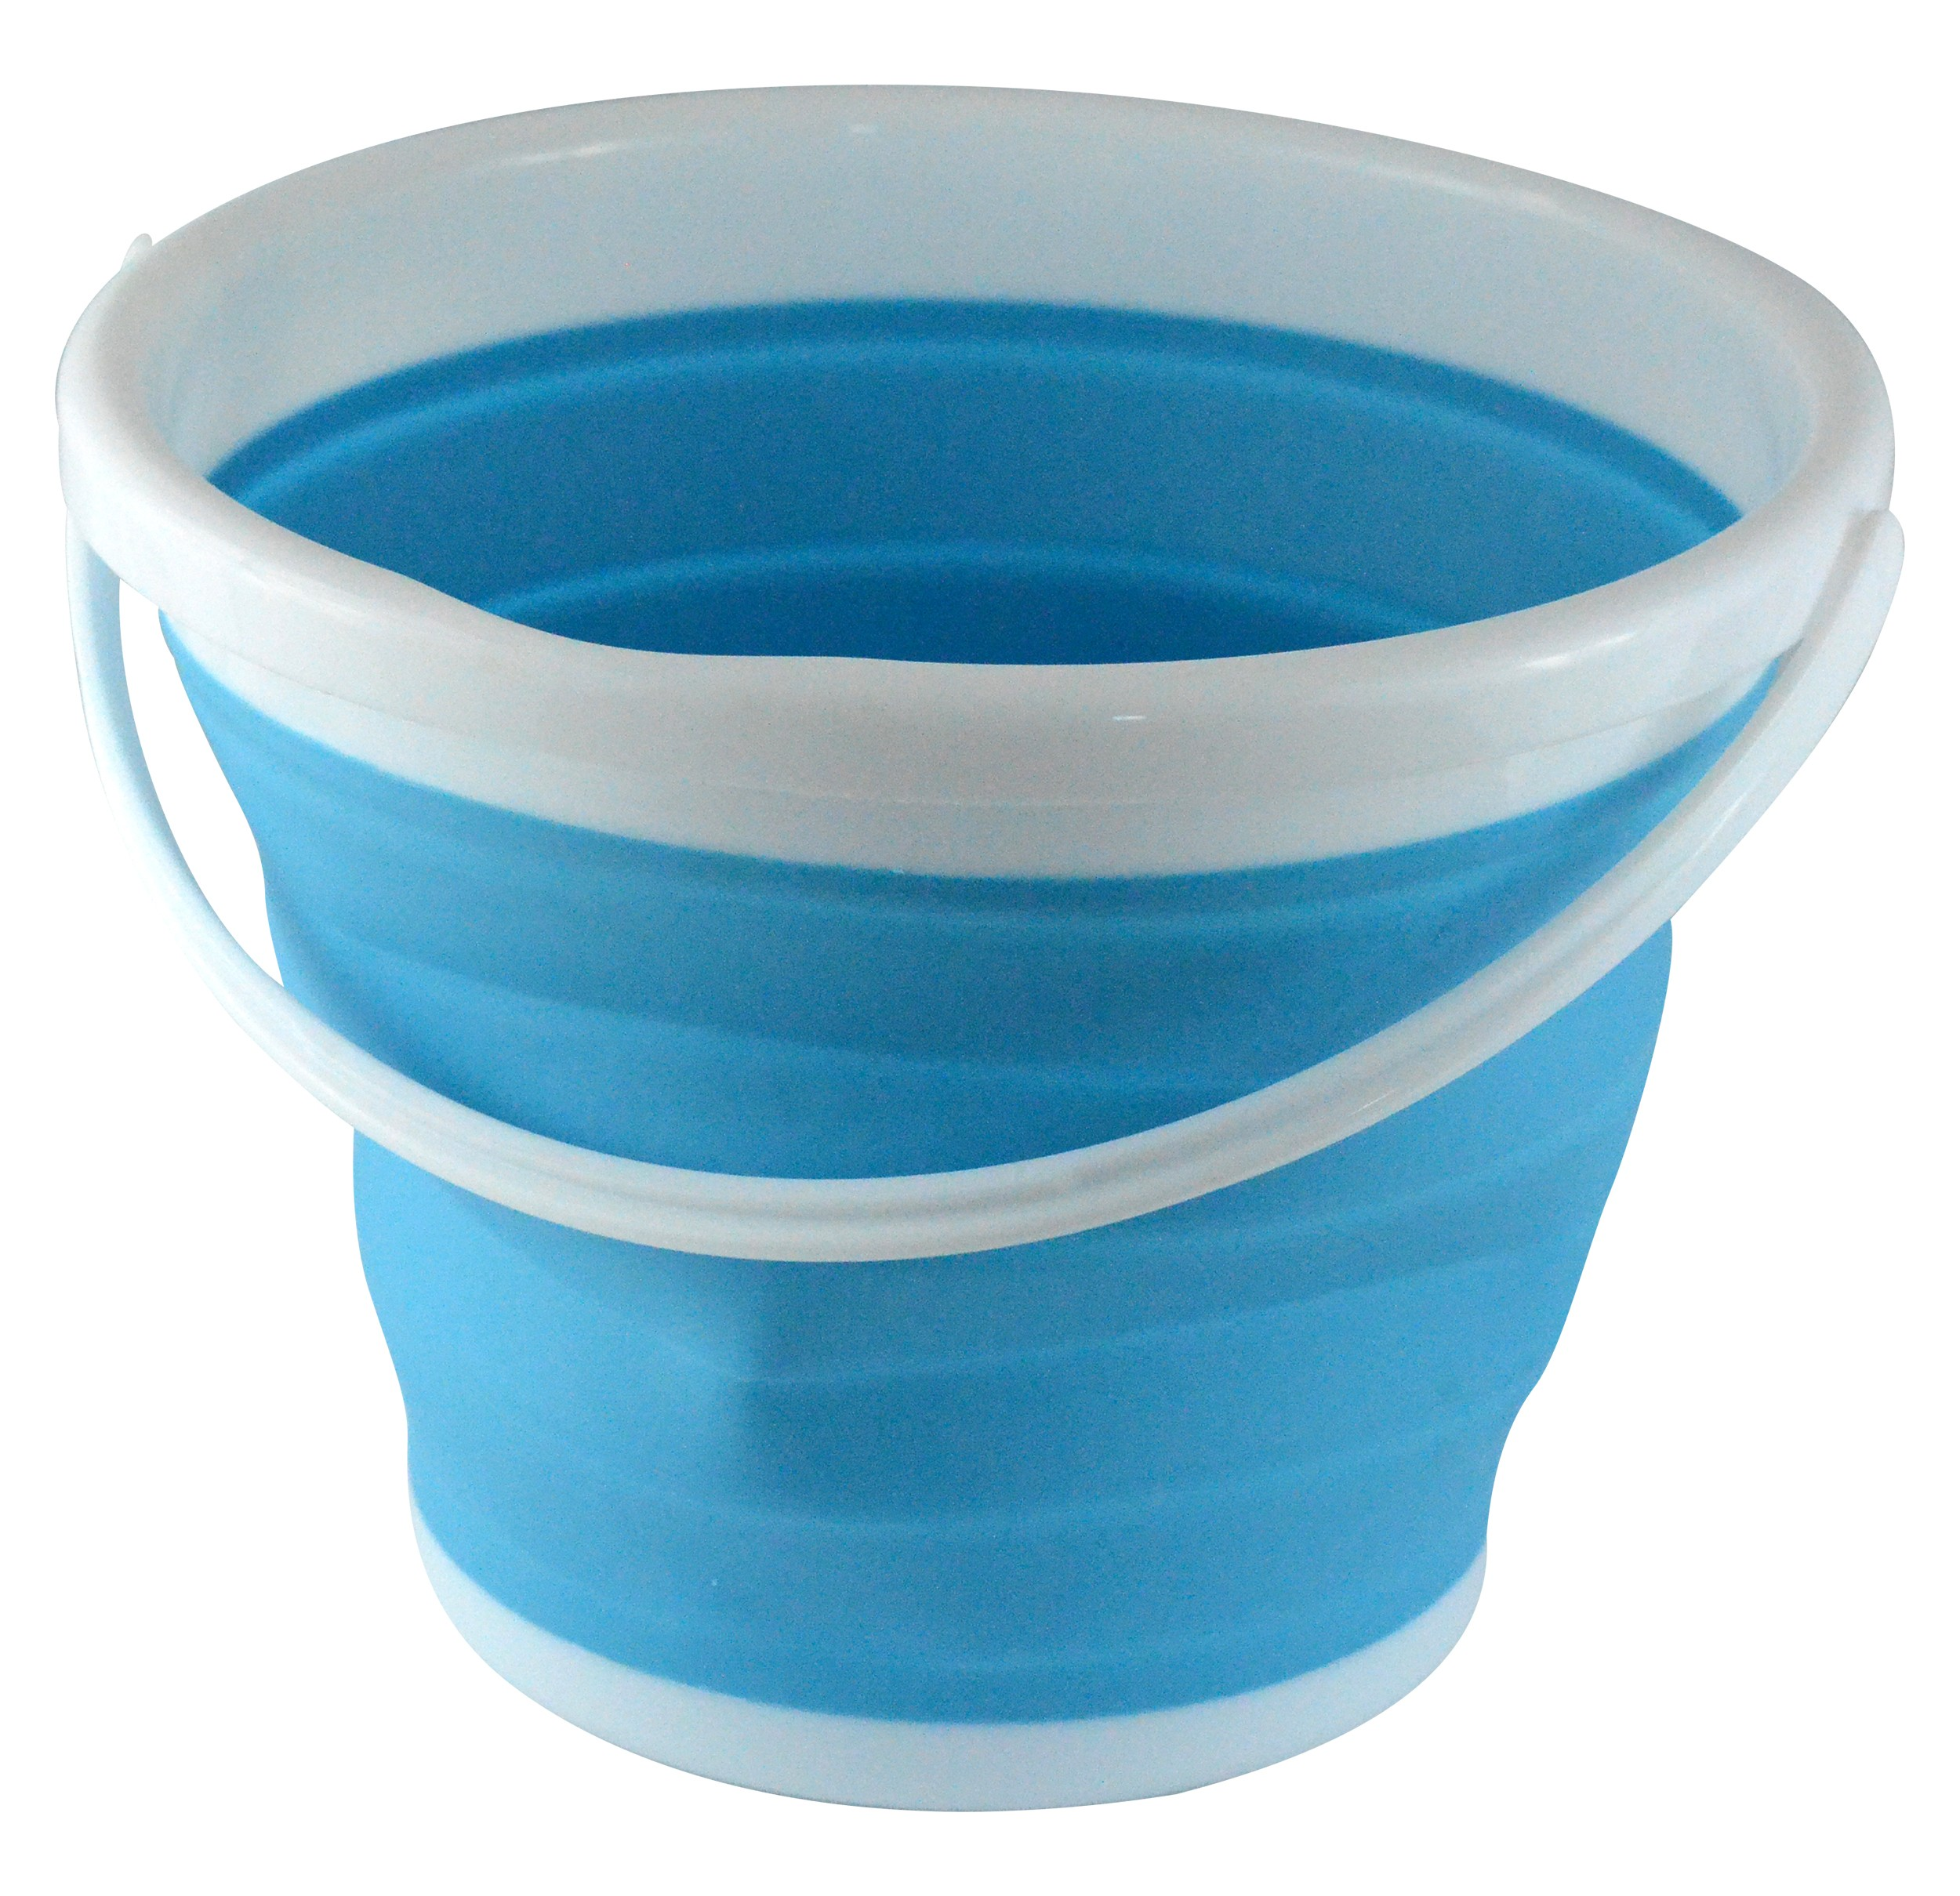 Foldable Silicone Collapsible 2.65 Gallon Bucket, Blue